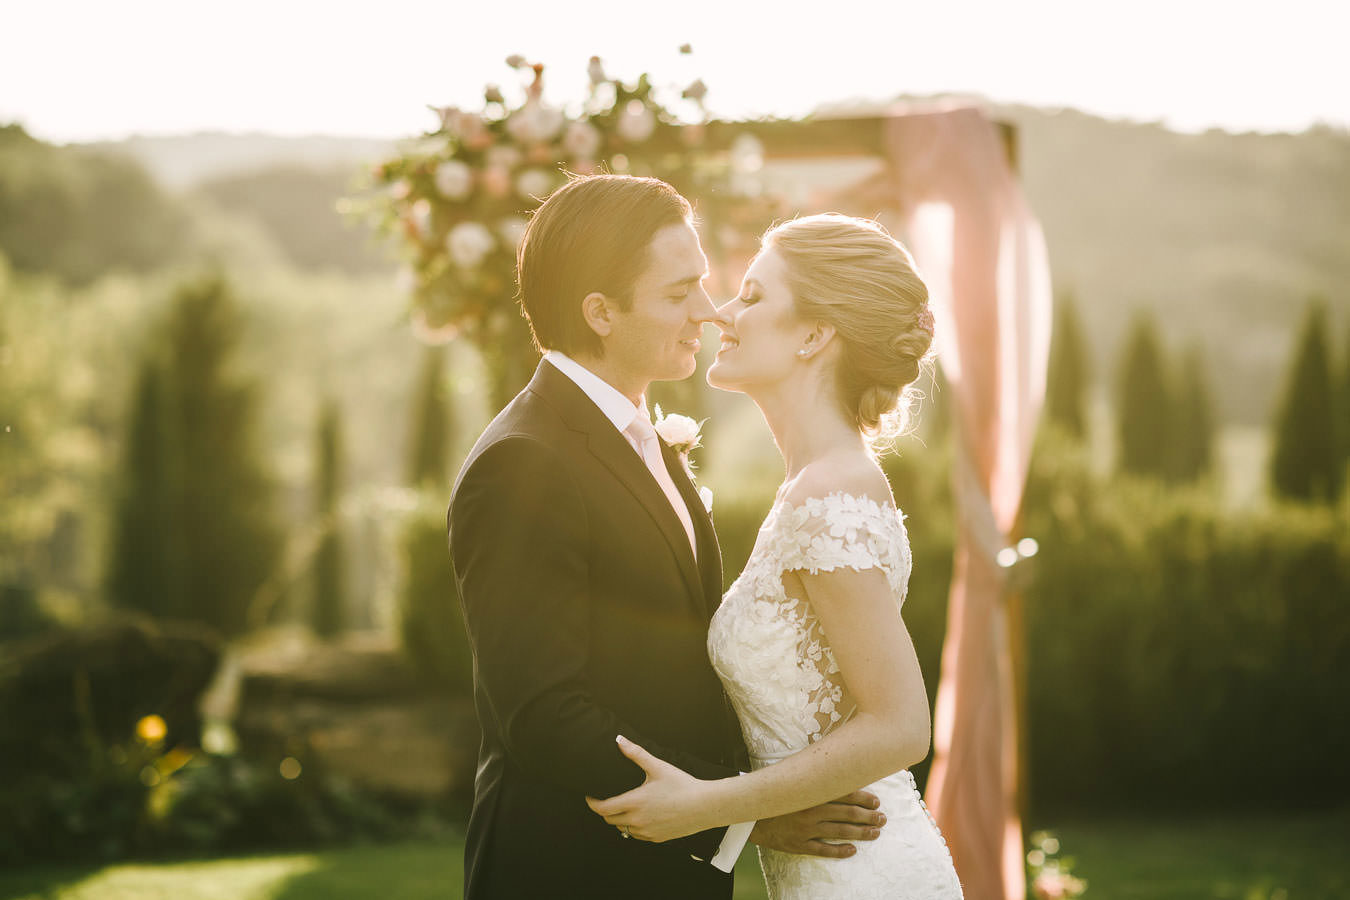 Villa La Selva resort in Tuscany countryside is a perfect surroundings for a dreamy elopement in Italy